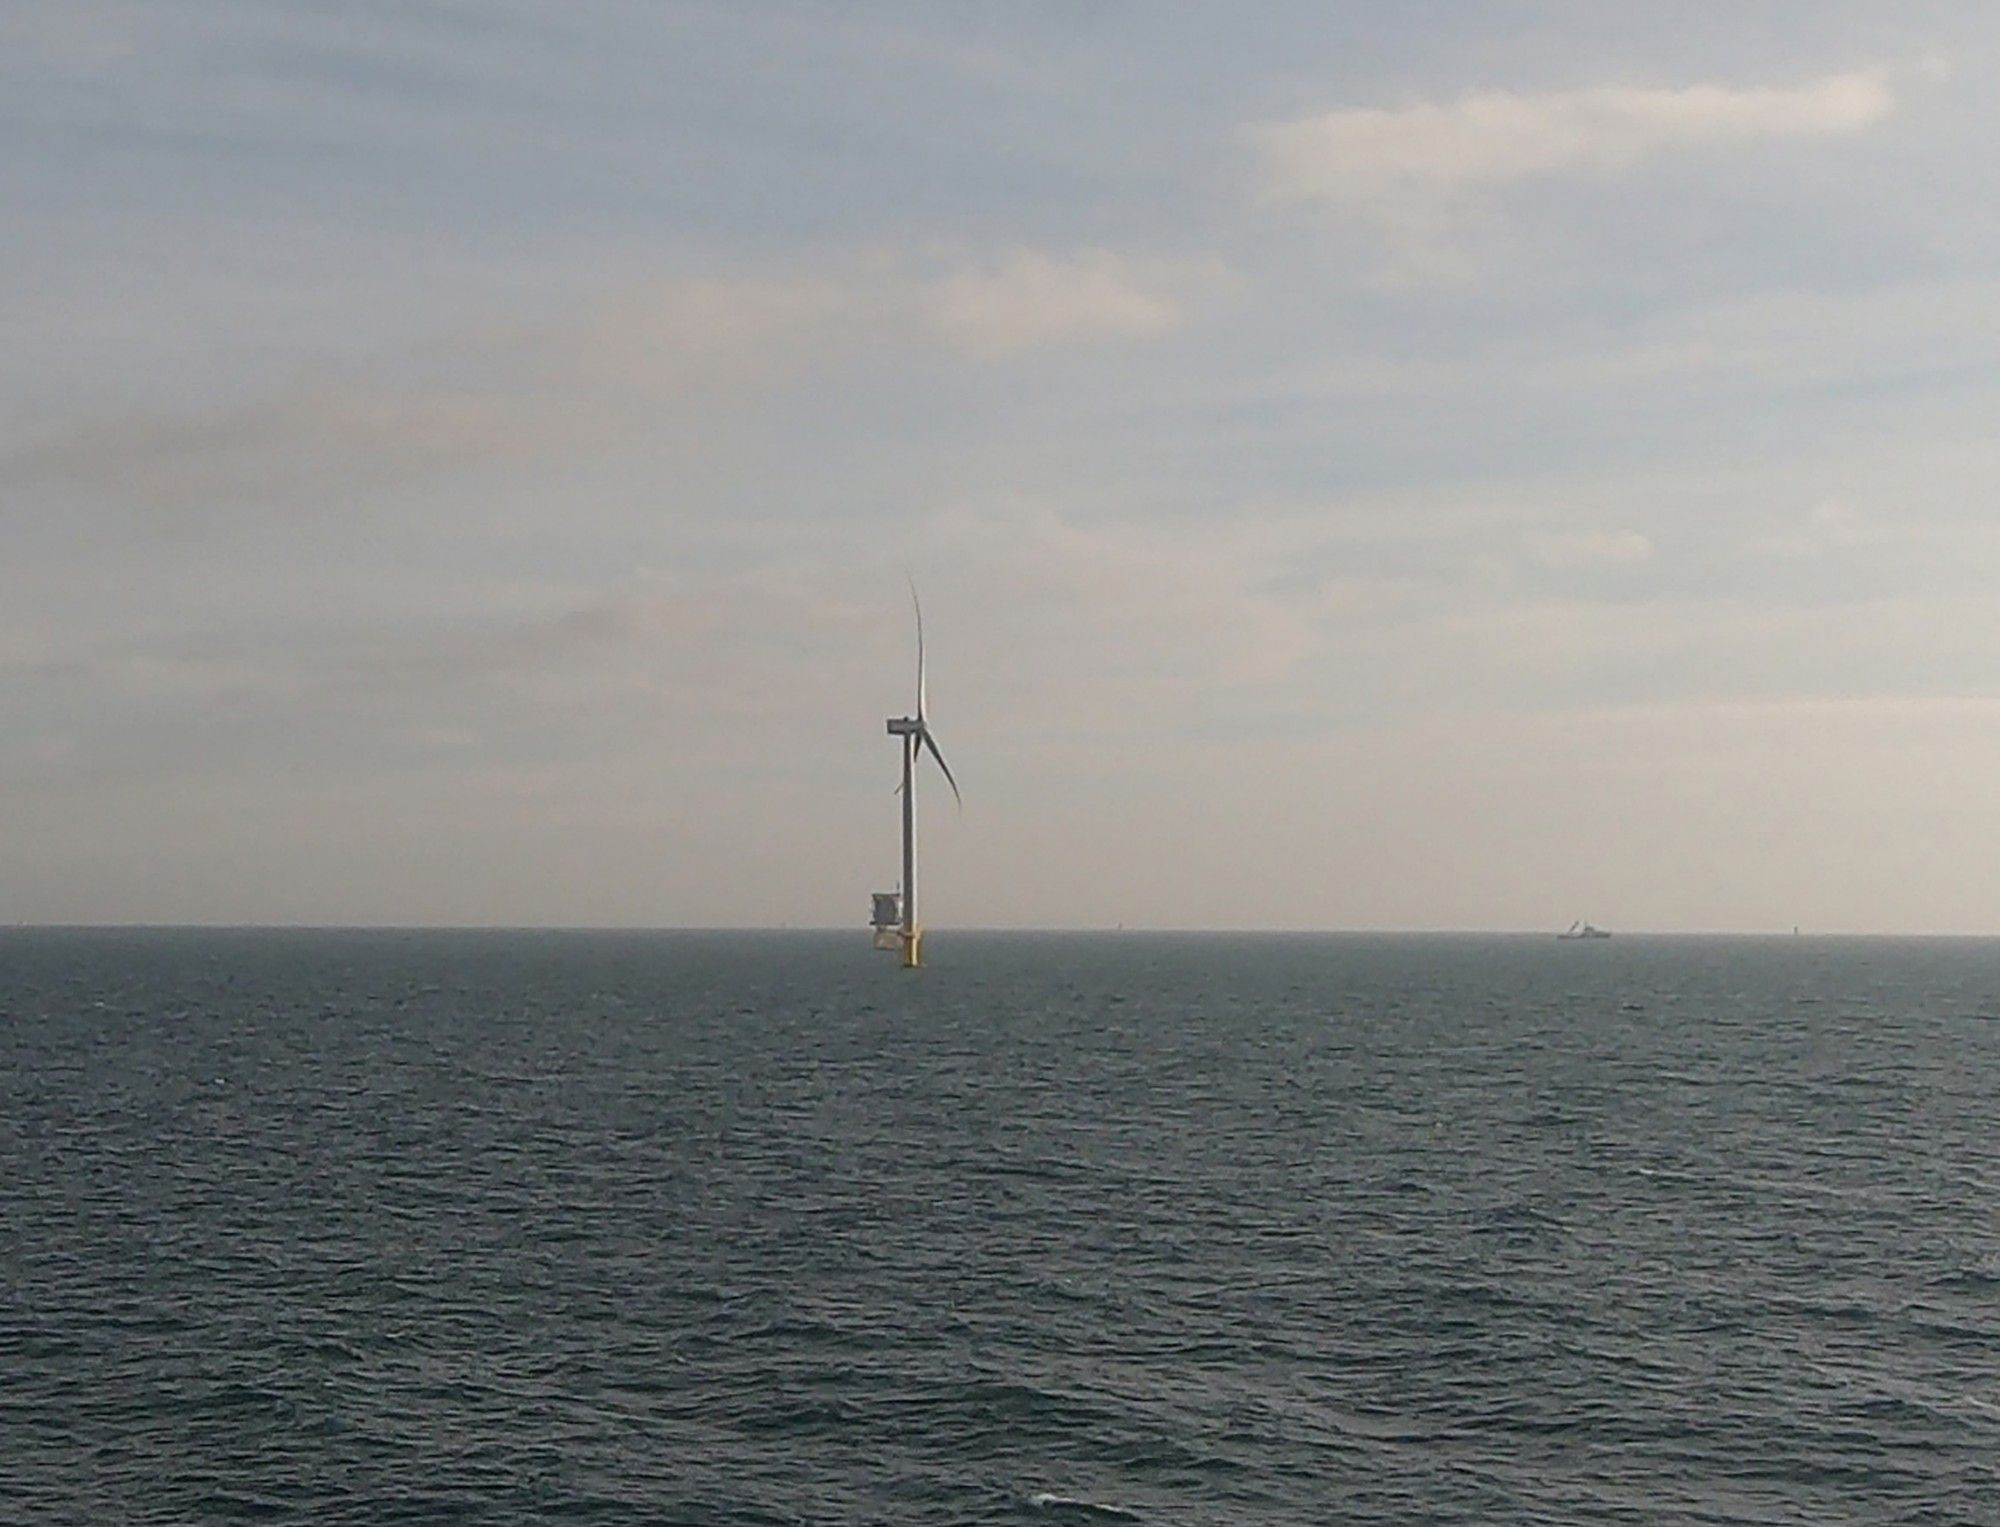 Mainstream has worked on a number of offshore wind projects, including the 3 GW Hornsea project in the U.K., later sold to Ørsted. (Credit: Ørsted)